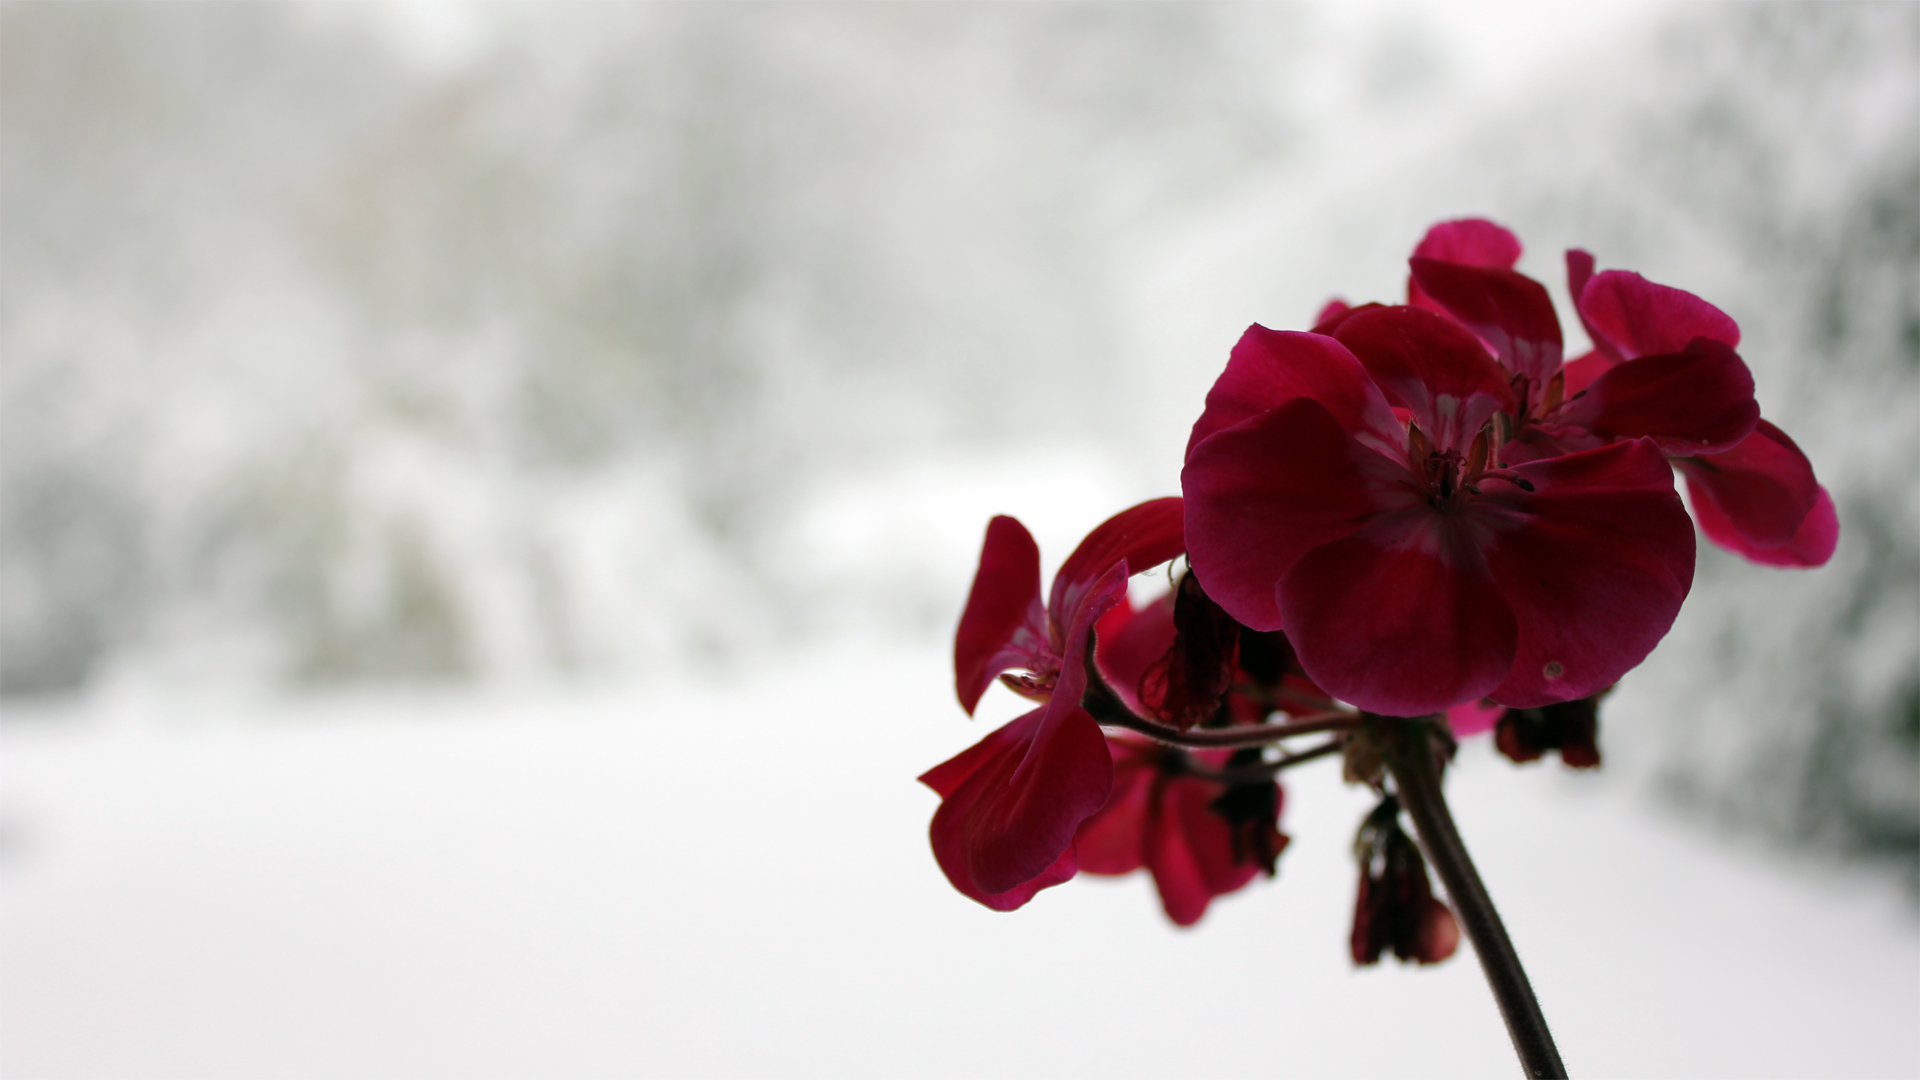 Snowflower Wallpaper by TheLonelyNumber on DeviantArt